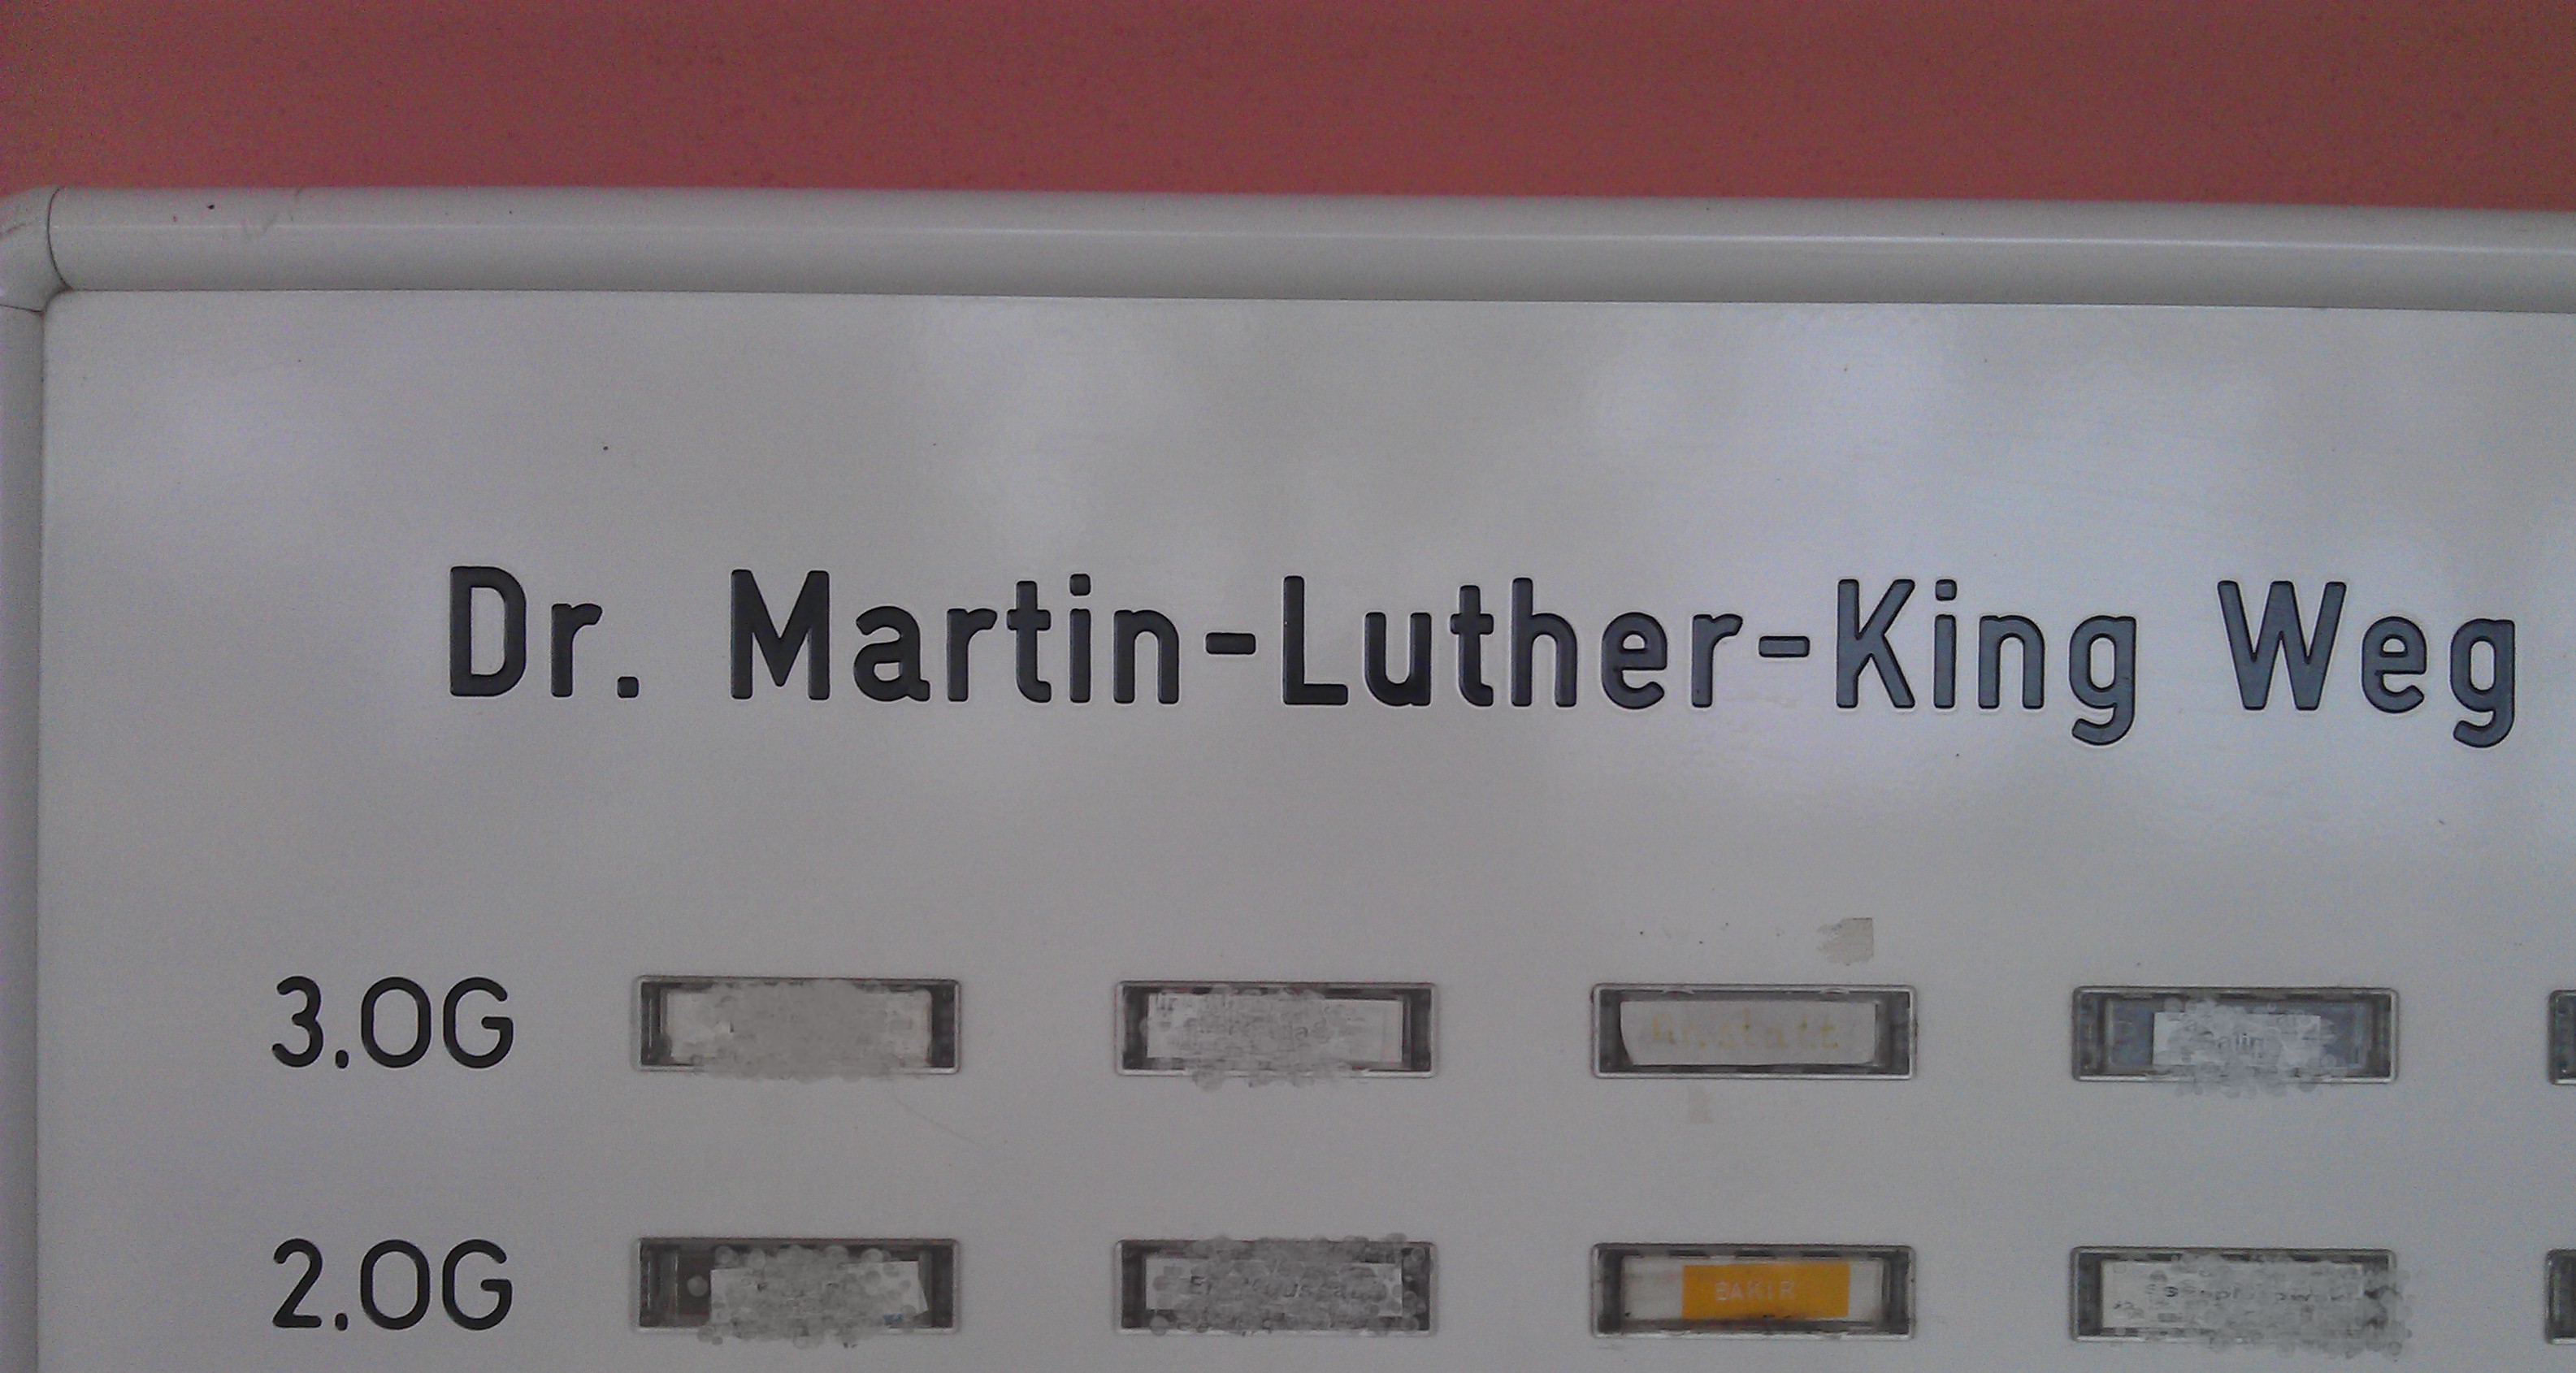 Dr. Martin-Luther-King Weg